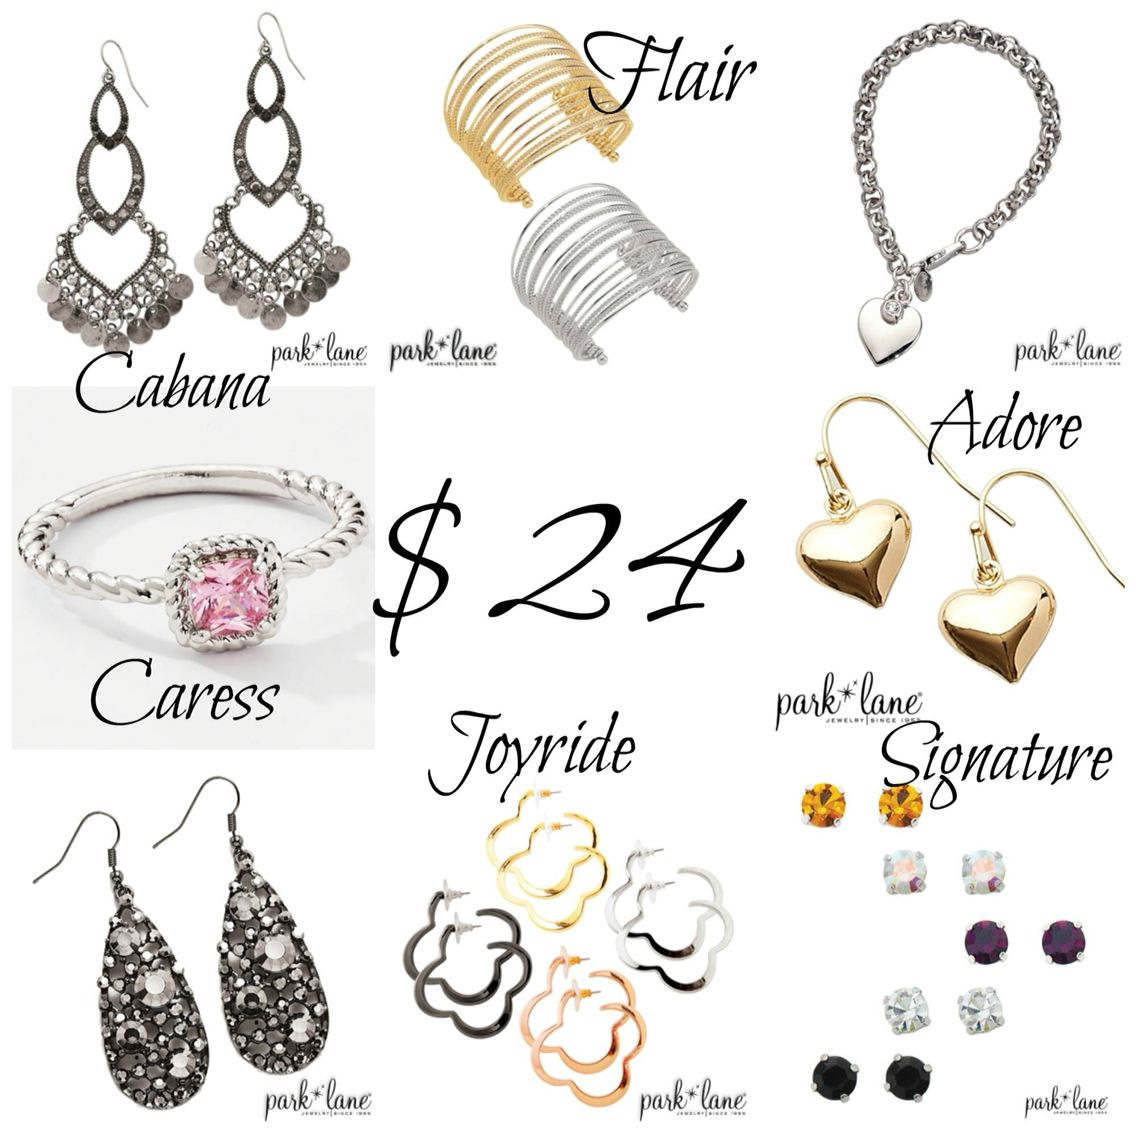 33+ How can i buy jewelry wholesale ideas